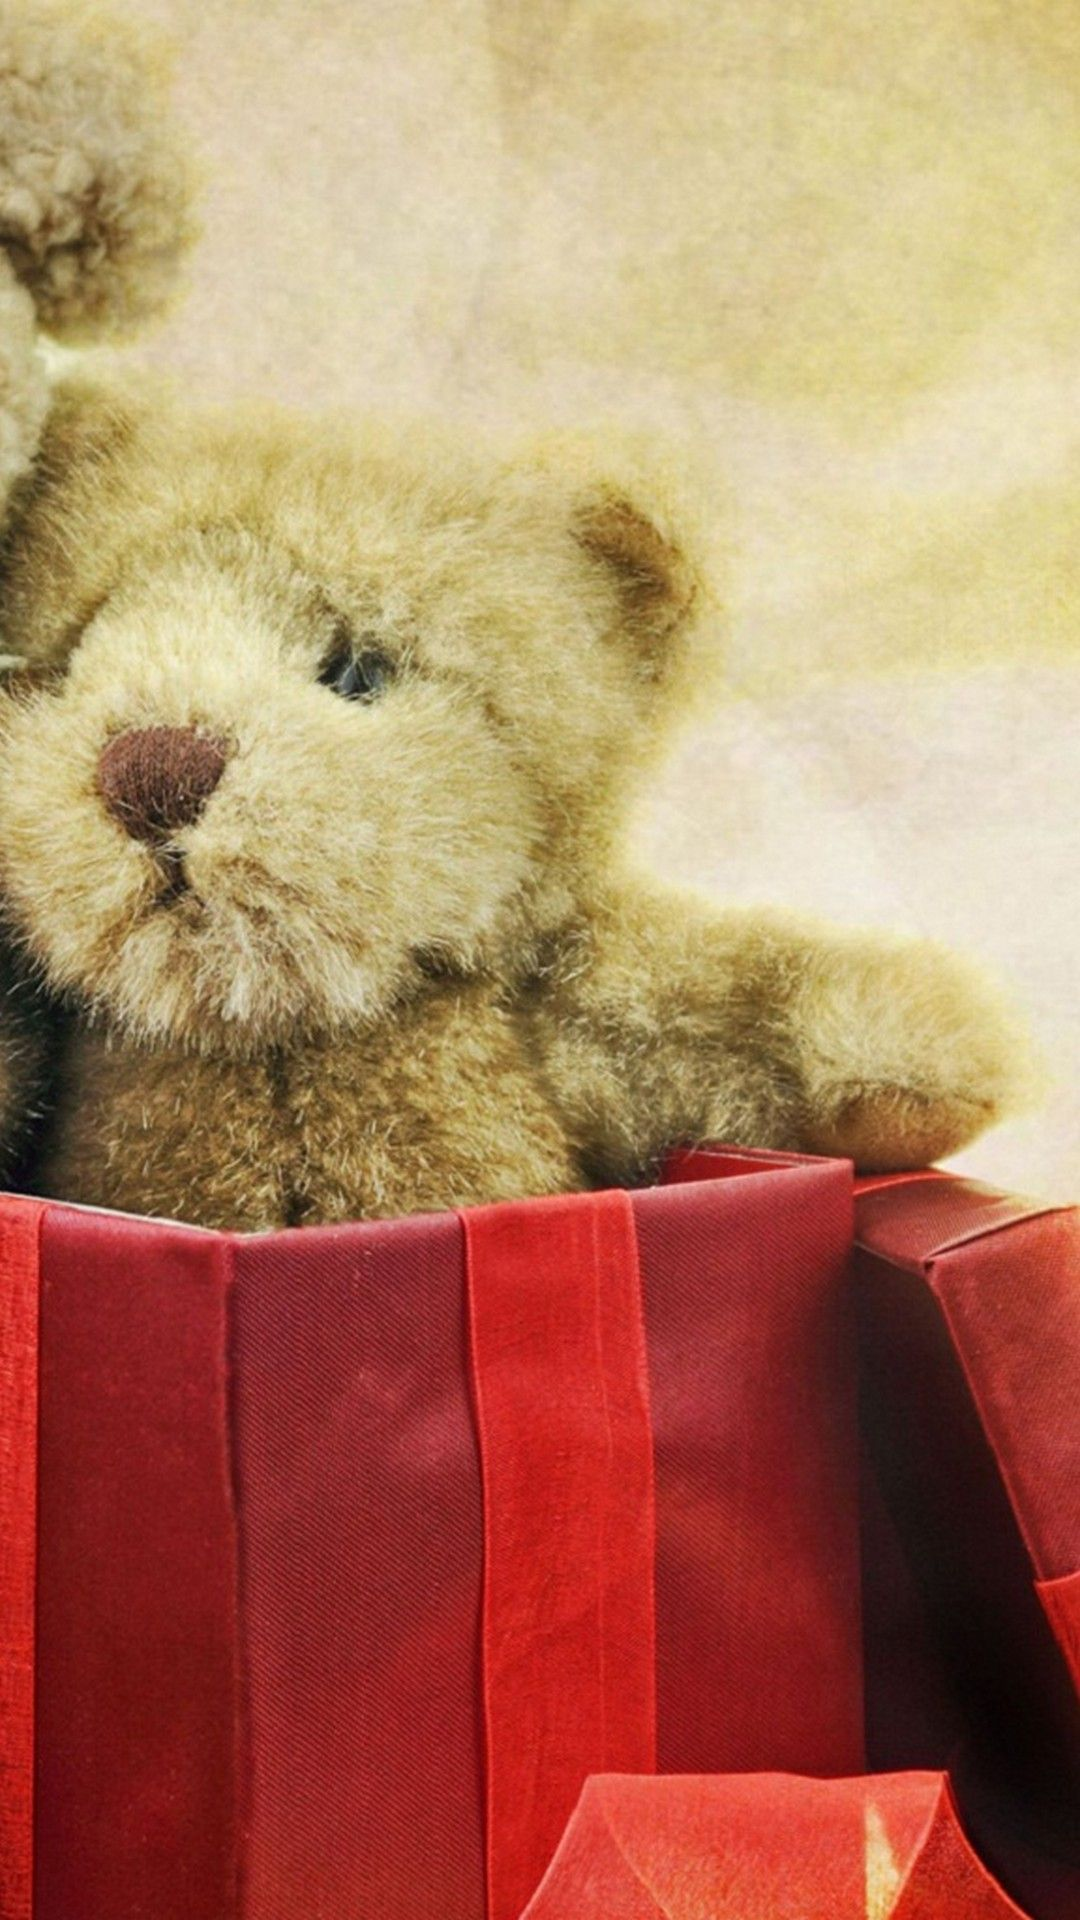 Wallpaper Android Big Teddy Bear Android Wallpapers Pinterest